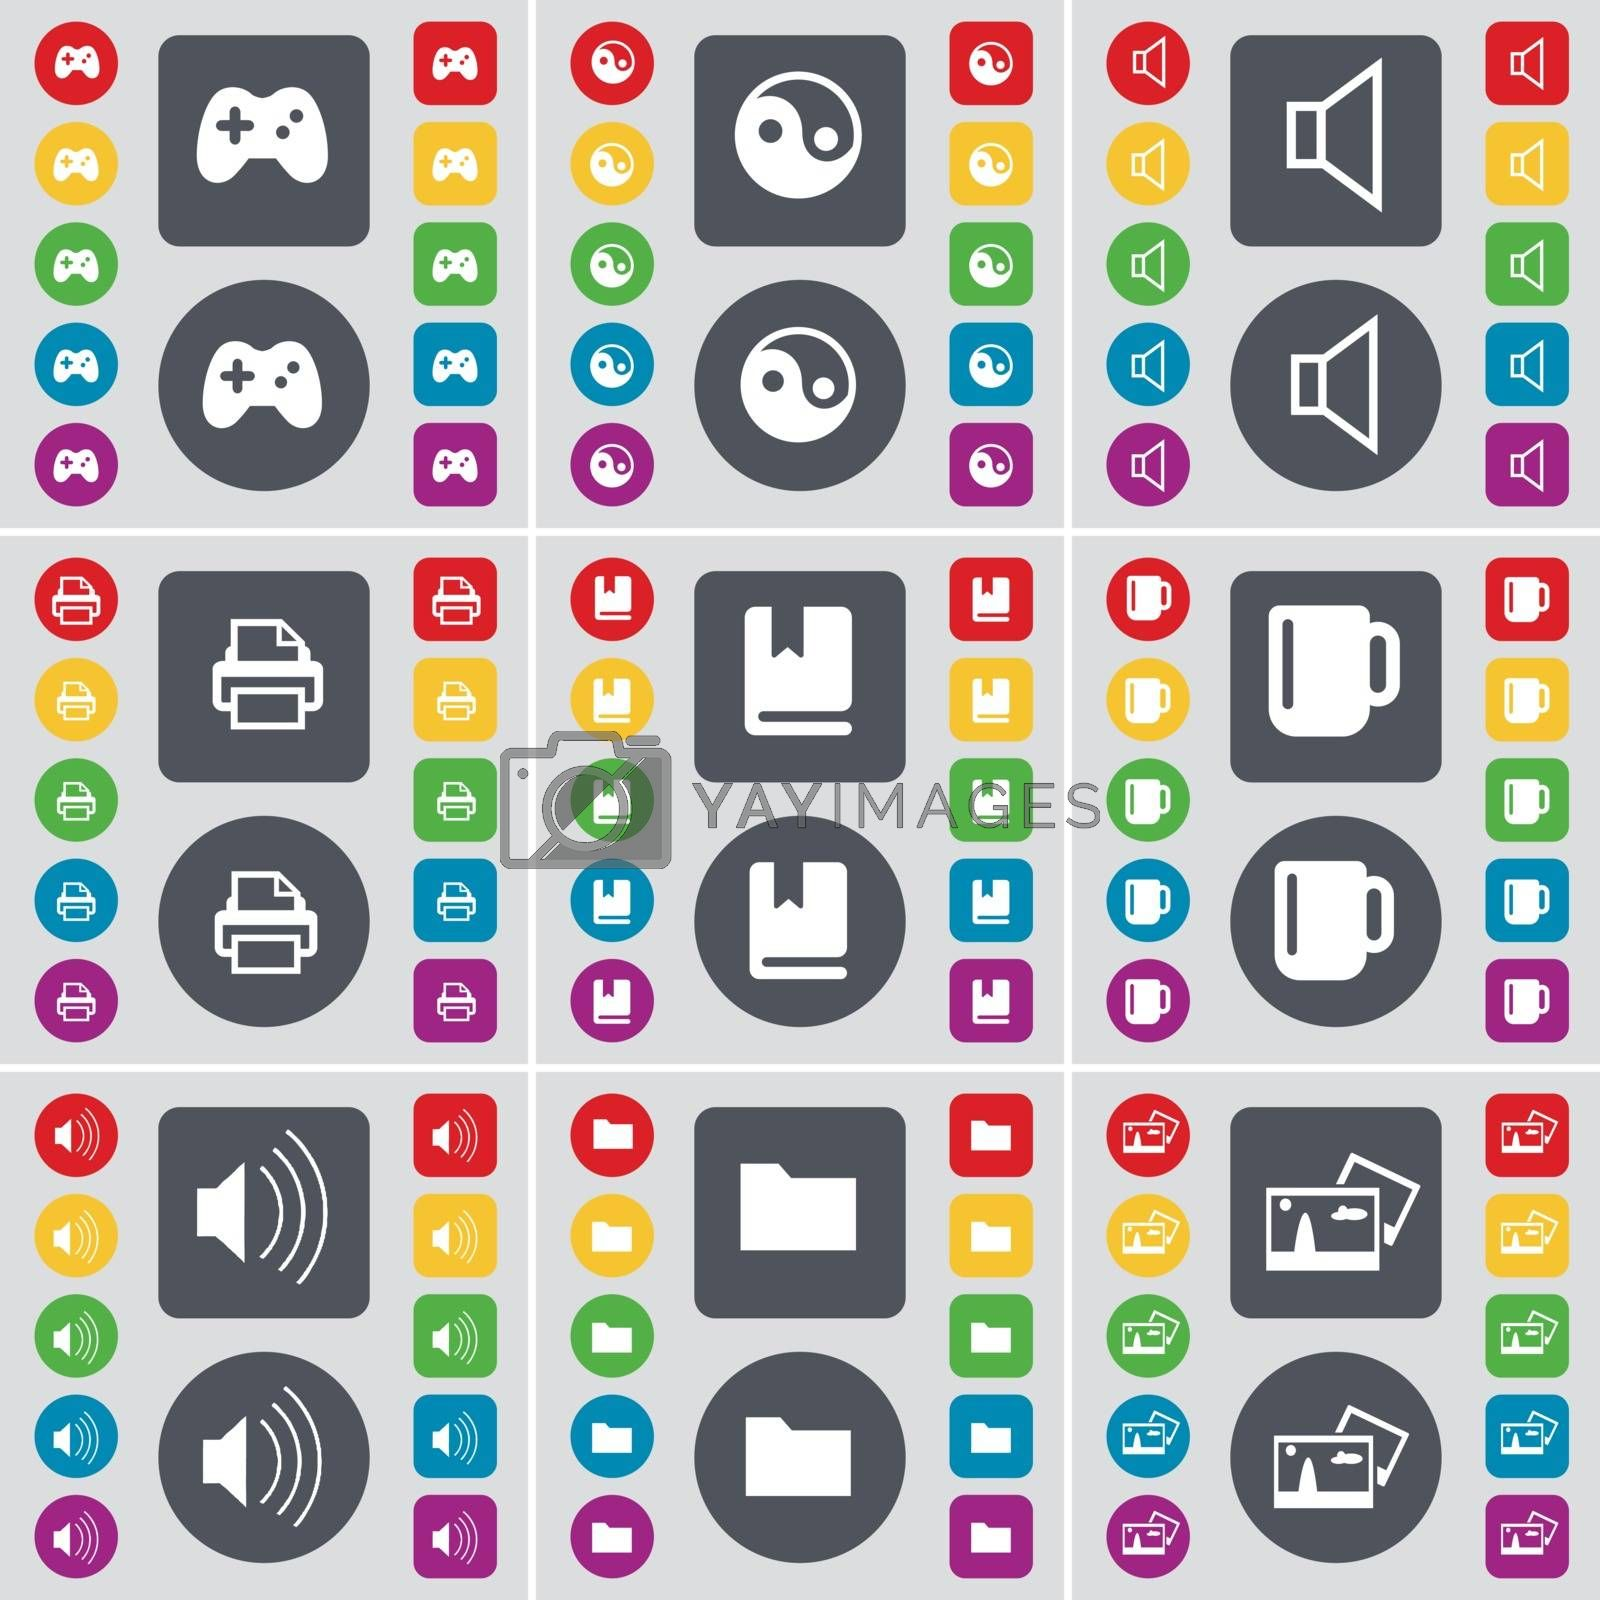 Royalty free image of Gamepad, Yin-Yang, Sound, Printer, Dictionary, Cup, Sound, Folder, Picture icon symbol. A large set of flat, colored buttons for your design. Vector by serhii_lohvyniuk